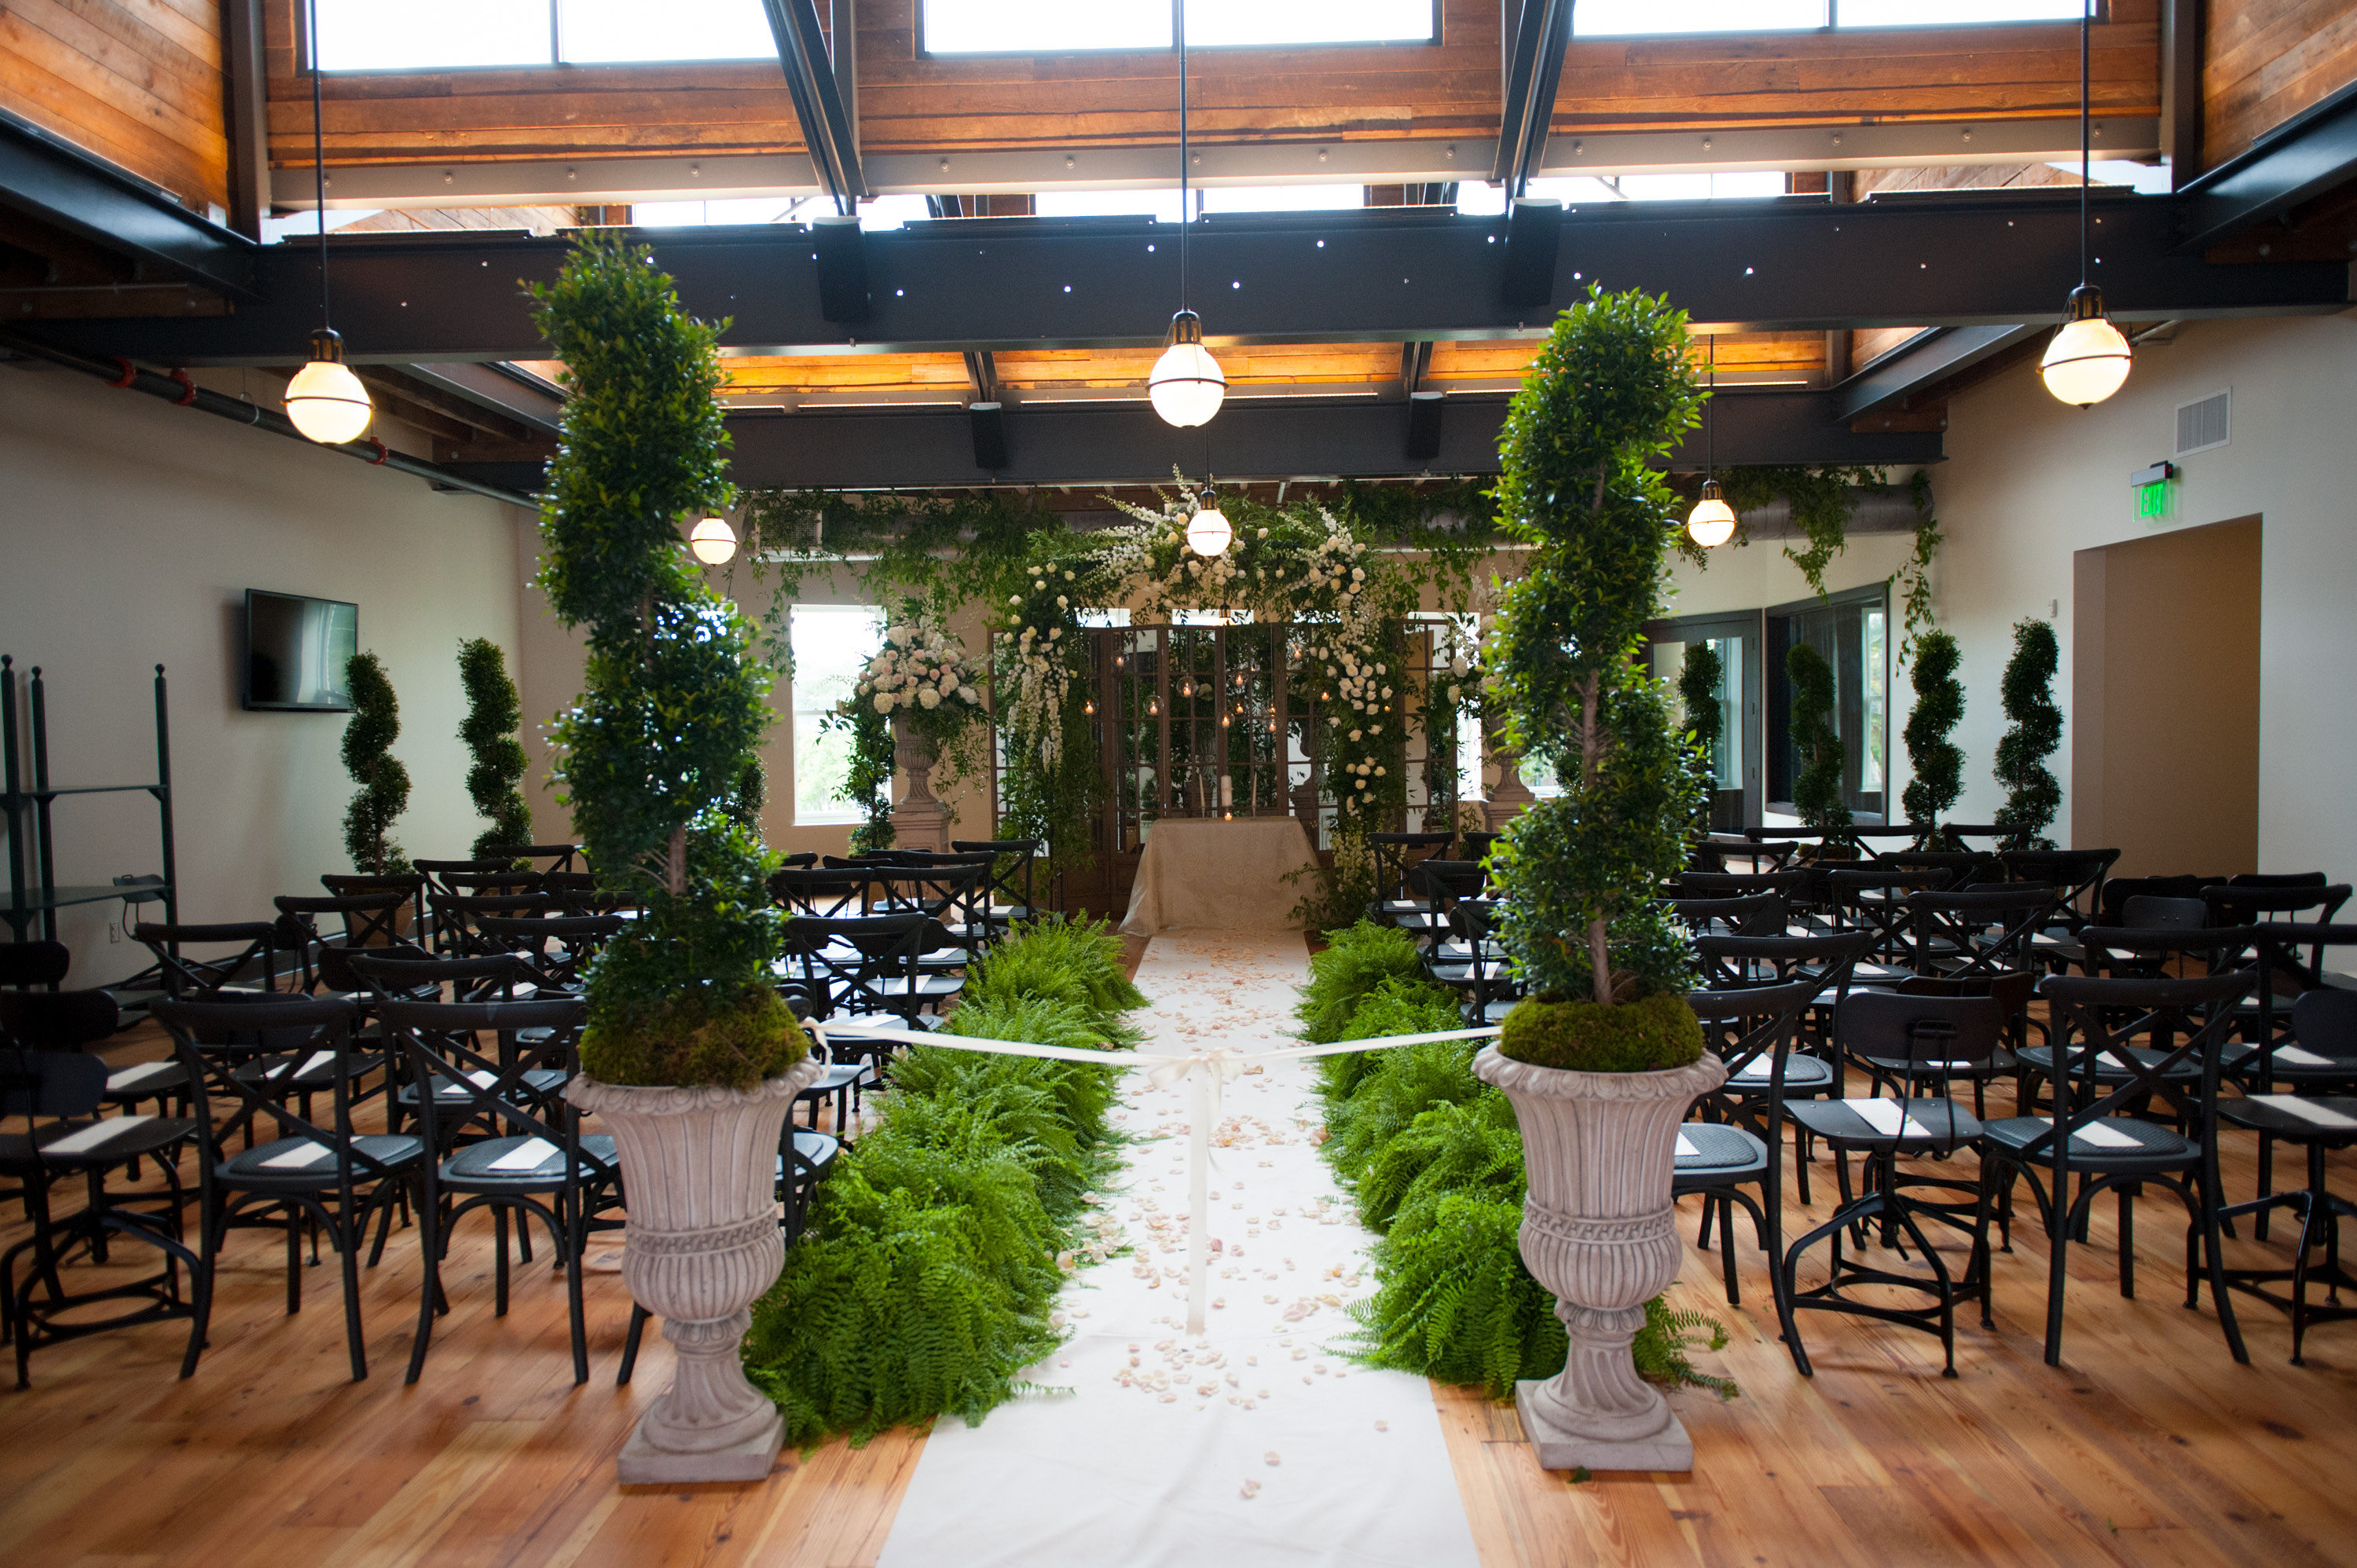 enchanting wedding at Oxford Excahange - Tracie Domino Events